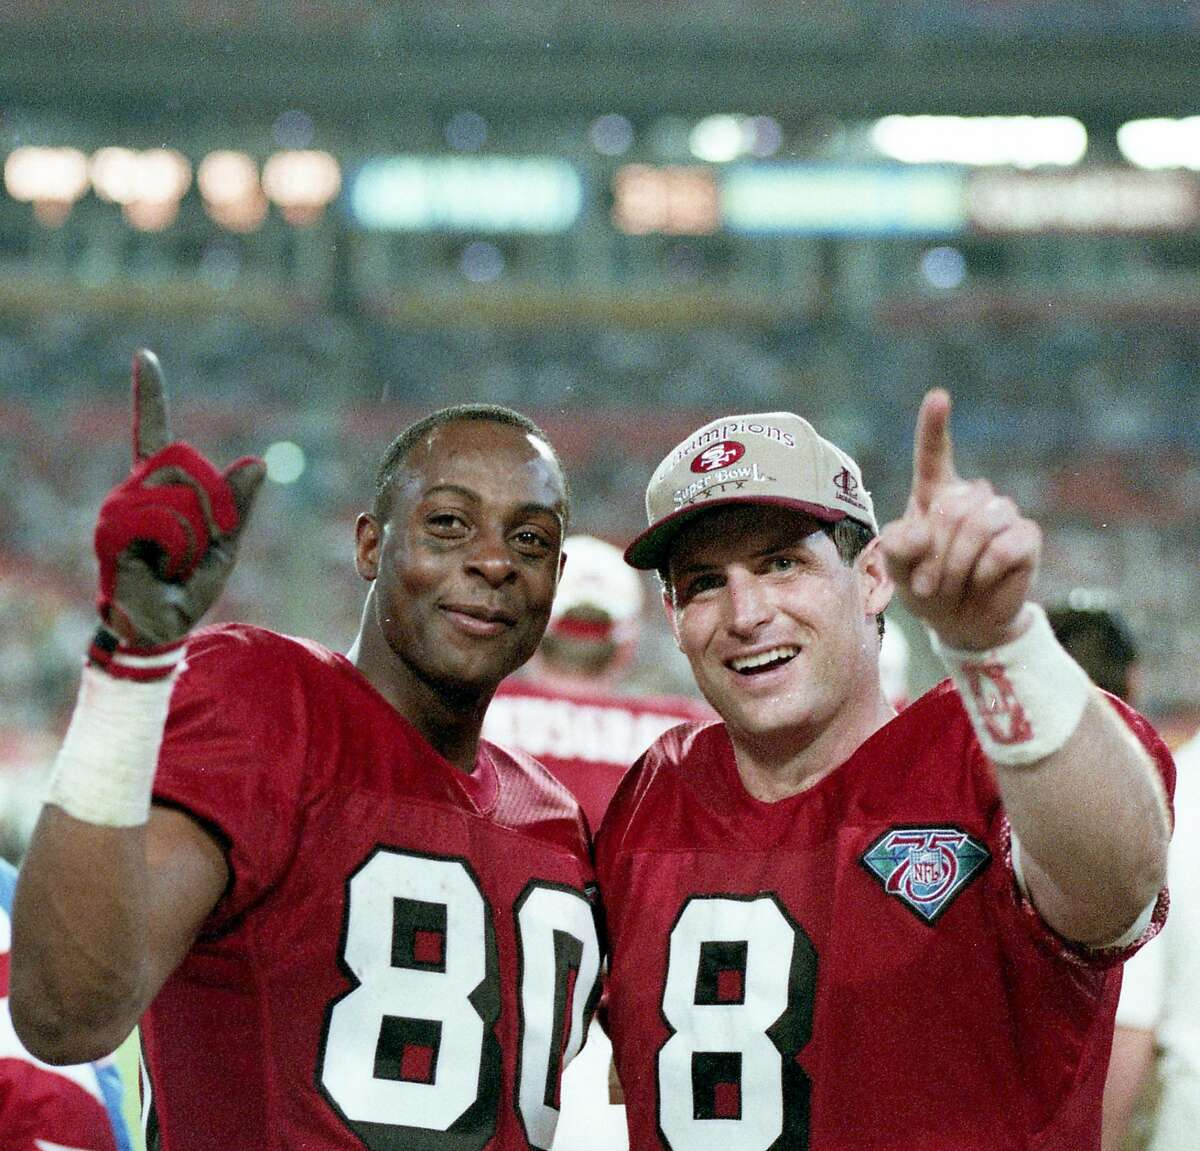 49ers beat the San Diego Chargers 49-26 to win Super Bowl XXIX, January 29, 1995 Jerry Rice and Steve Young